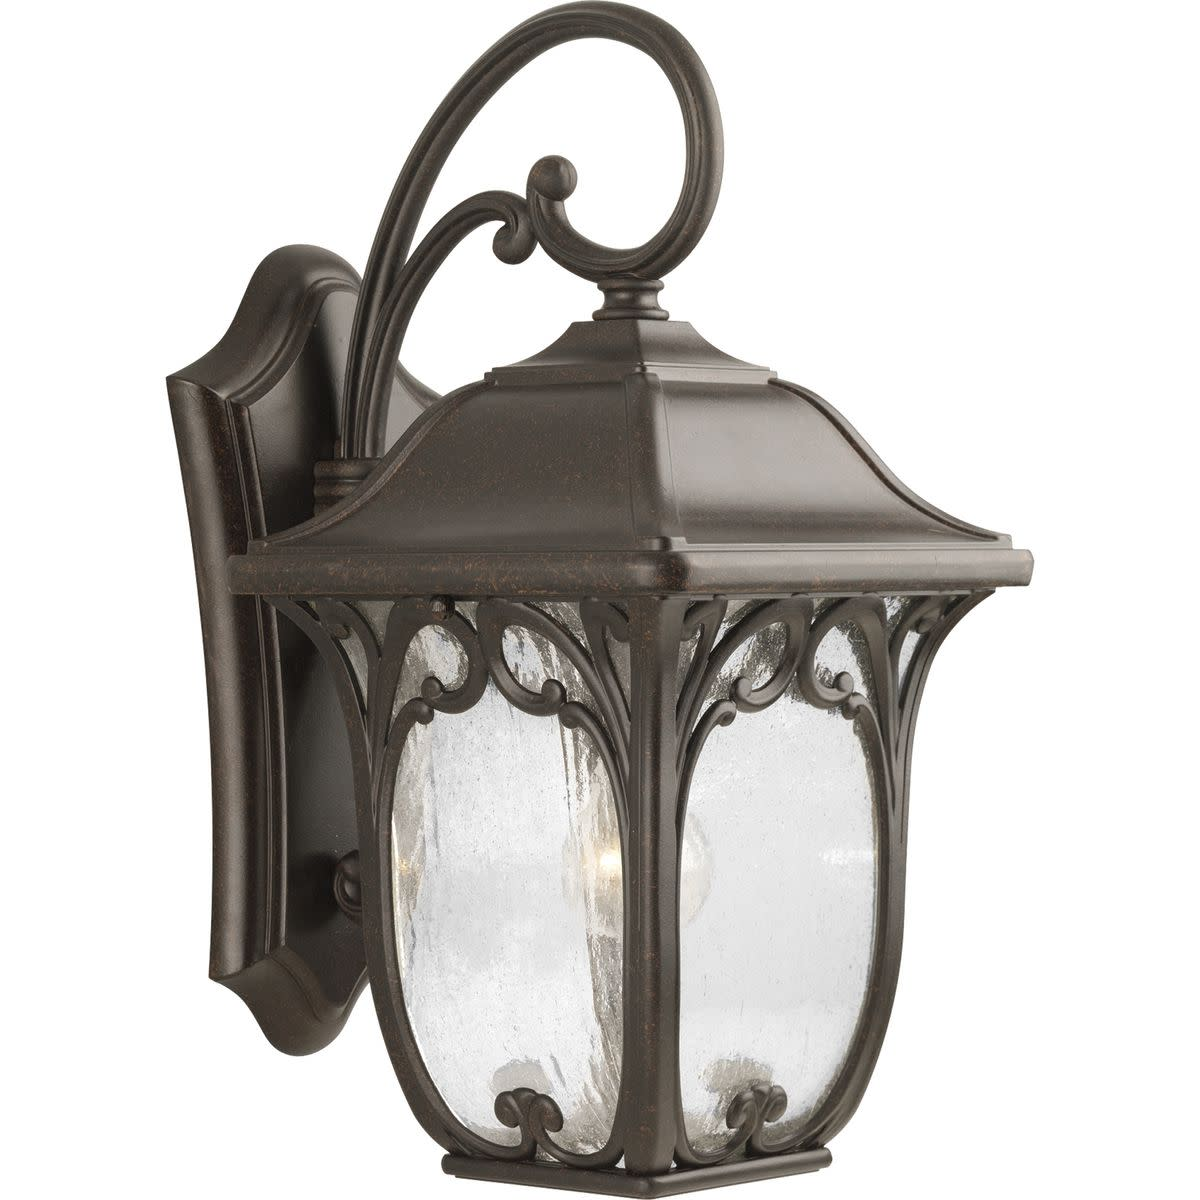 Enchant Collection One-Light Wall Lantern